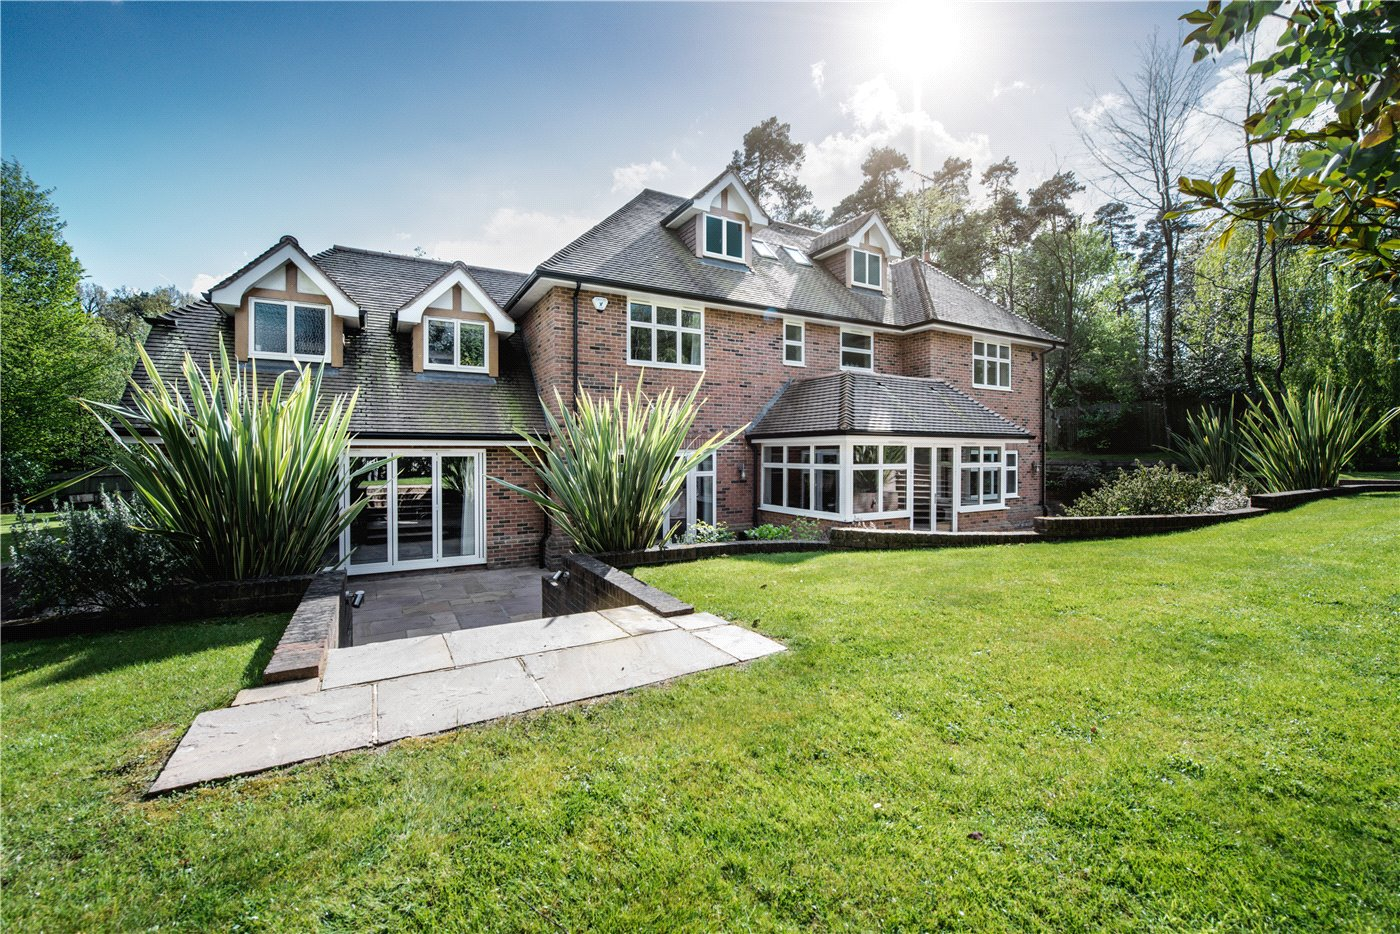 6 Bedroom Property For Sale In Whichert Close Knotty Green Wiring A House Sound 04 Acre Off Street Gated Parking Cctv Intelligent Lighting Fully Wired It System Family And Formal Reception